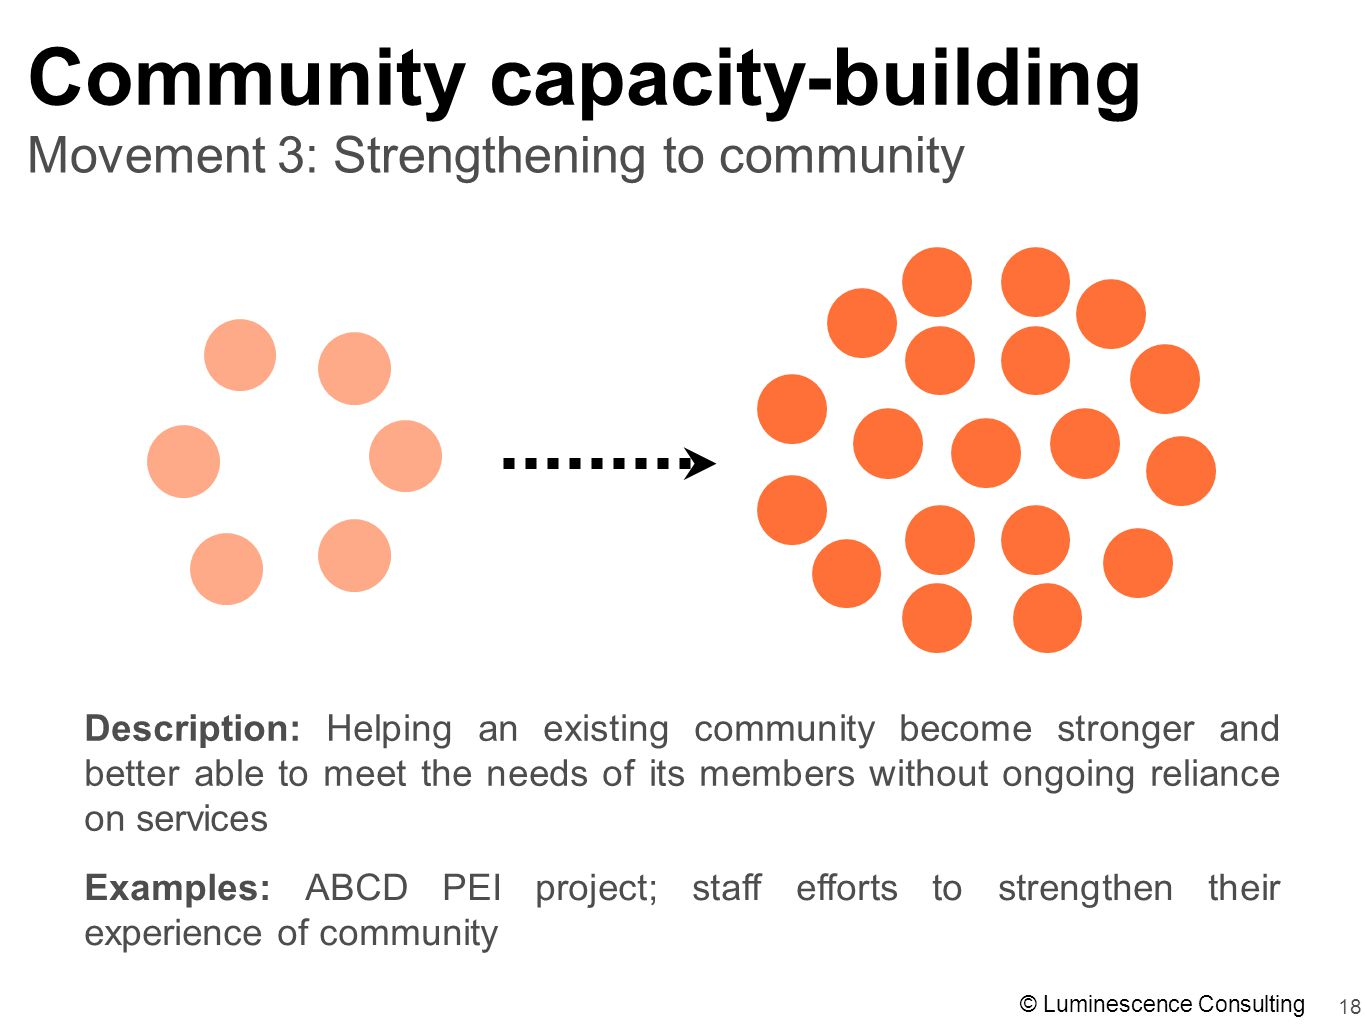 18 Movement 3: Strengthening to community Community capacity-building Description: Helping an existing community become stronger and better able to meet the needs of its members without ongoing reliance on services Examples: ABCD PEI project; staff efforts to strengthen their experience of community © Luminescence Consulting